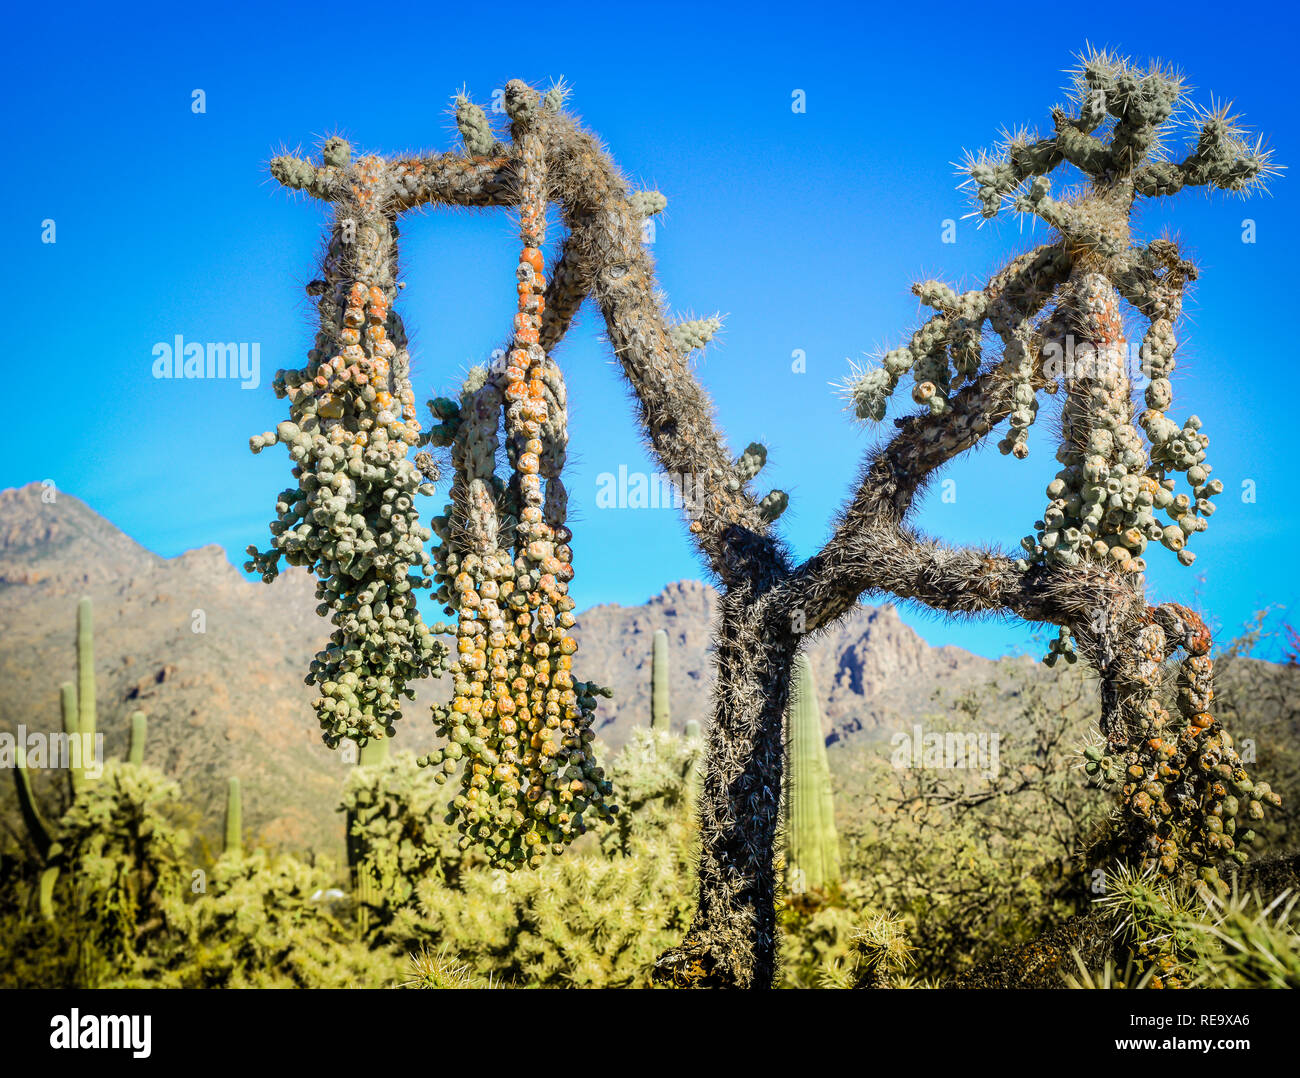 Hanging chain fruit from cholla cactus in the Sabino Canyon Recreation Area in the Santa Catalina Mountains near Tucson, AZ - Stock Image